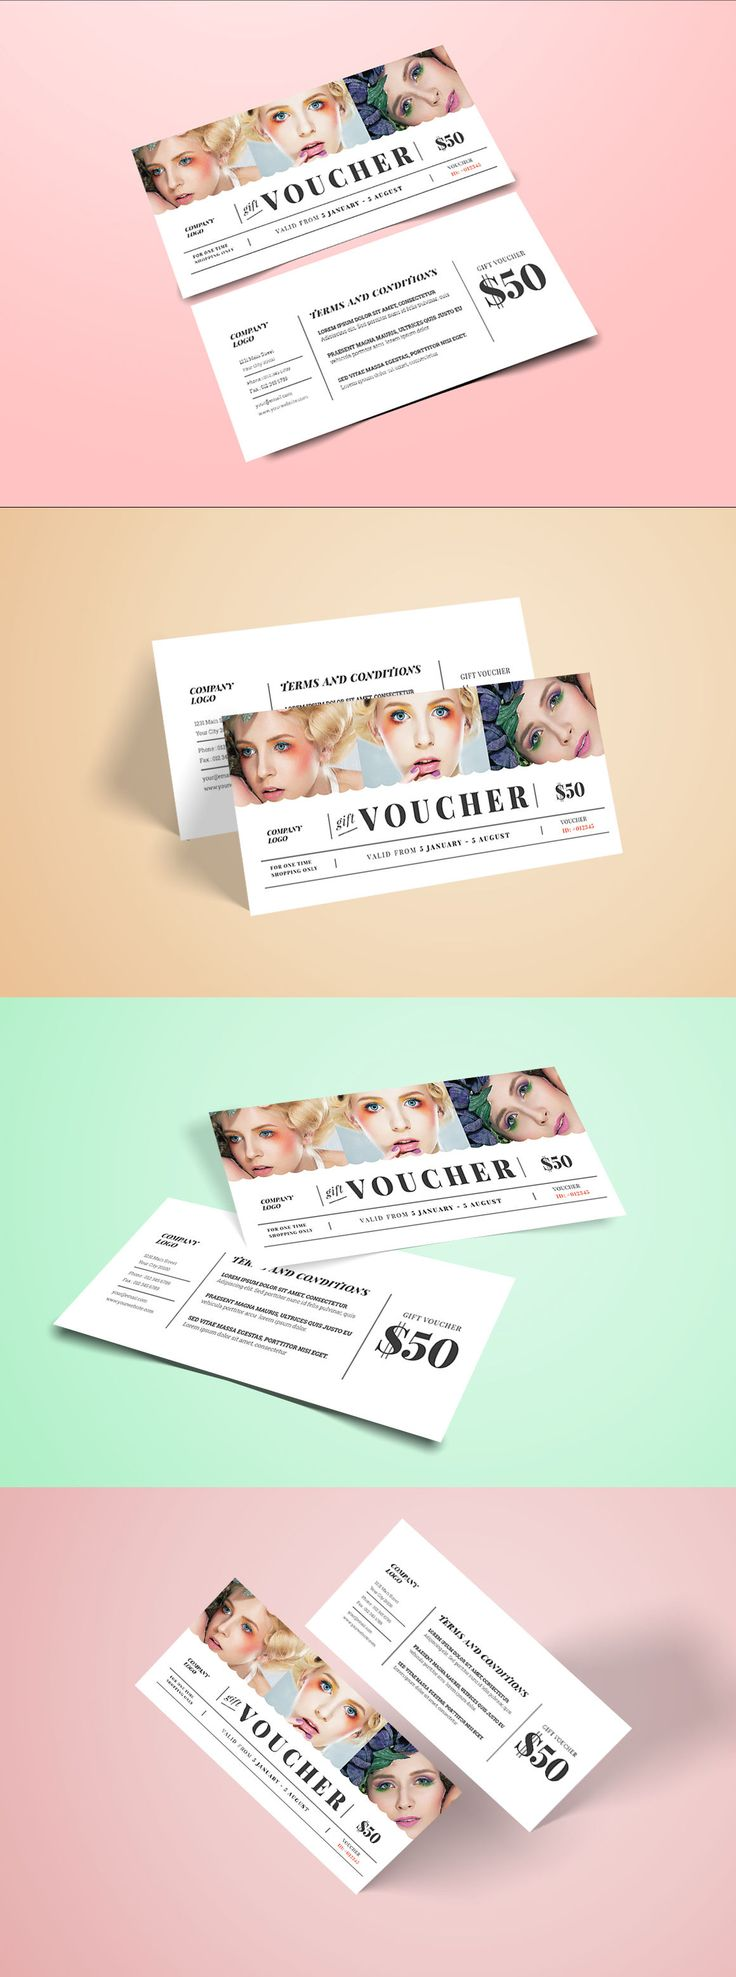 Create Your Own Voucher Template 19 Best Voucher Images On Pinterest  Gift Voucher Design Gift .